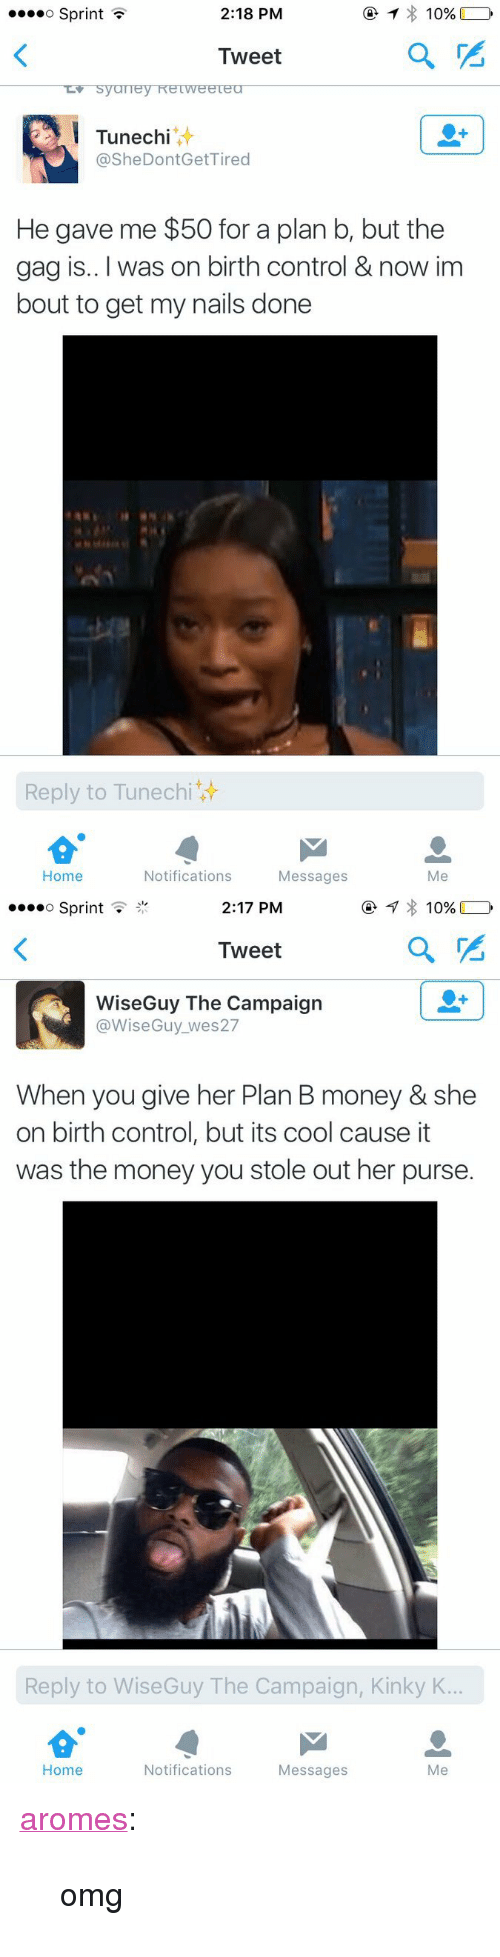 """Money, Omg, and Plan B: o SprintT  2:18 PM  10%  Tweet  Tunechi  @SheDontGetTired  He gave me $50 for a plan b, but the  gag is.. I was on birth control & now im  bout to get my nails done  Reply to Tunechi  Home  Notifications  Messages  Me   »oo  o Sprint .  2:17 PM  Tweet  WiseGuy The Campaign  @WiseGuy_wes27  When you give her Plan B money & she  on birth control, but its cool cause it  was the money you stole out her purse.  Reply to WiseGuy The Campaign, Kinky K  Home  Notifications  Messages  Me <p><a class=""""tumblr_blog"""" href=""""http://aromes.tumblr.com/post/148221521838"""">aromes</a>:</p> <blockquote> <p>omg</p> </blockquote>"""